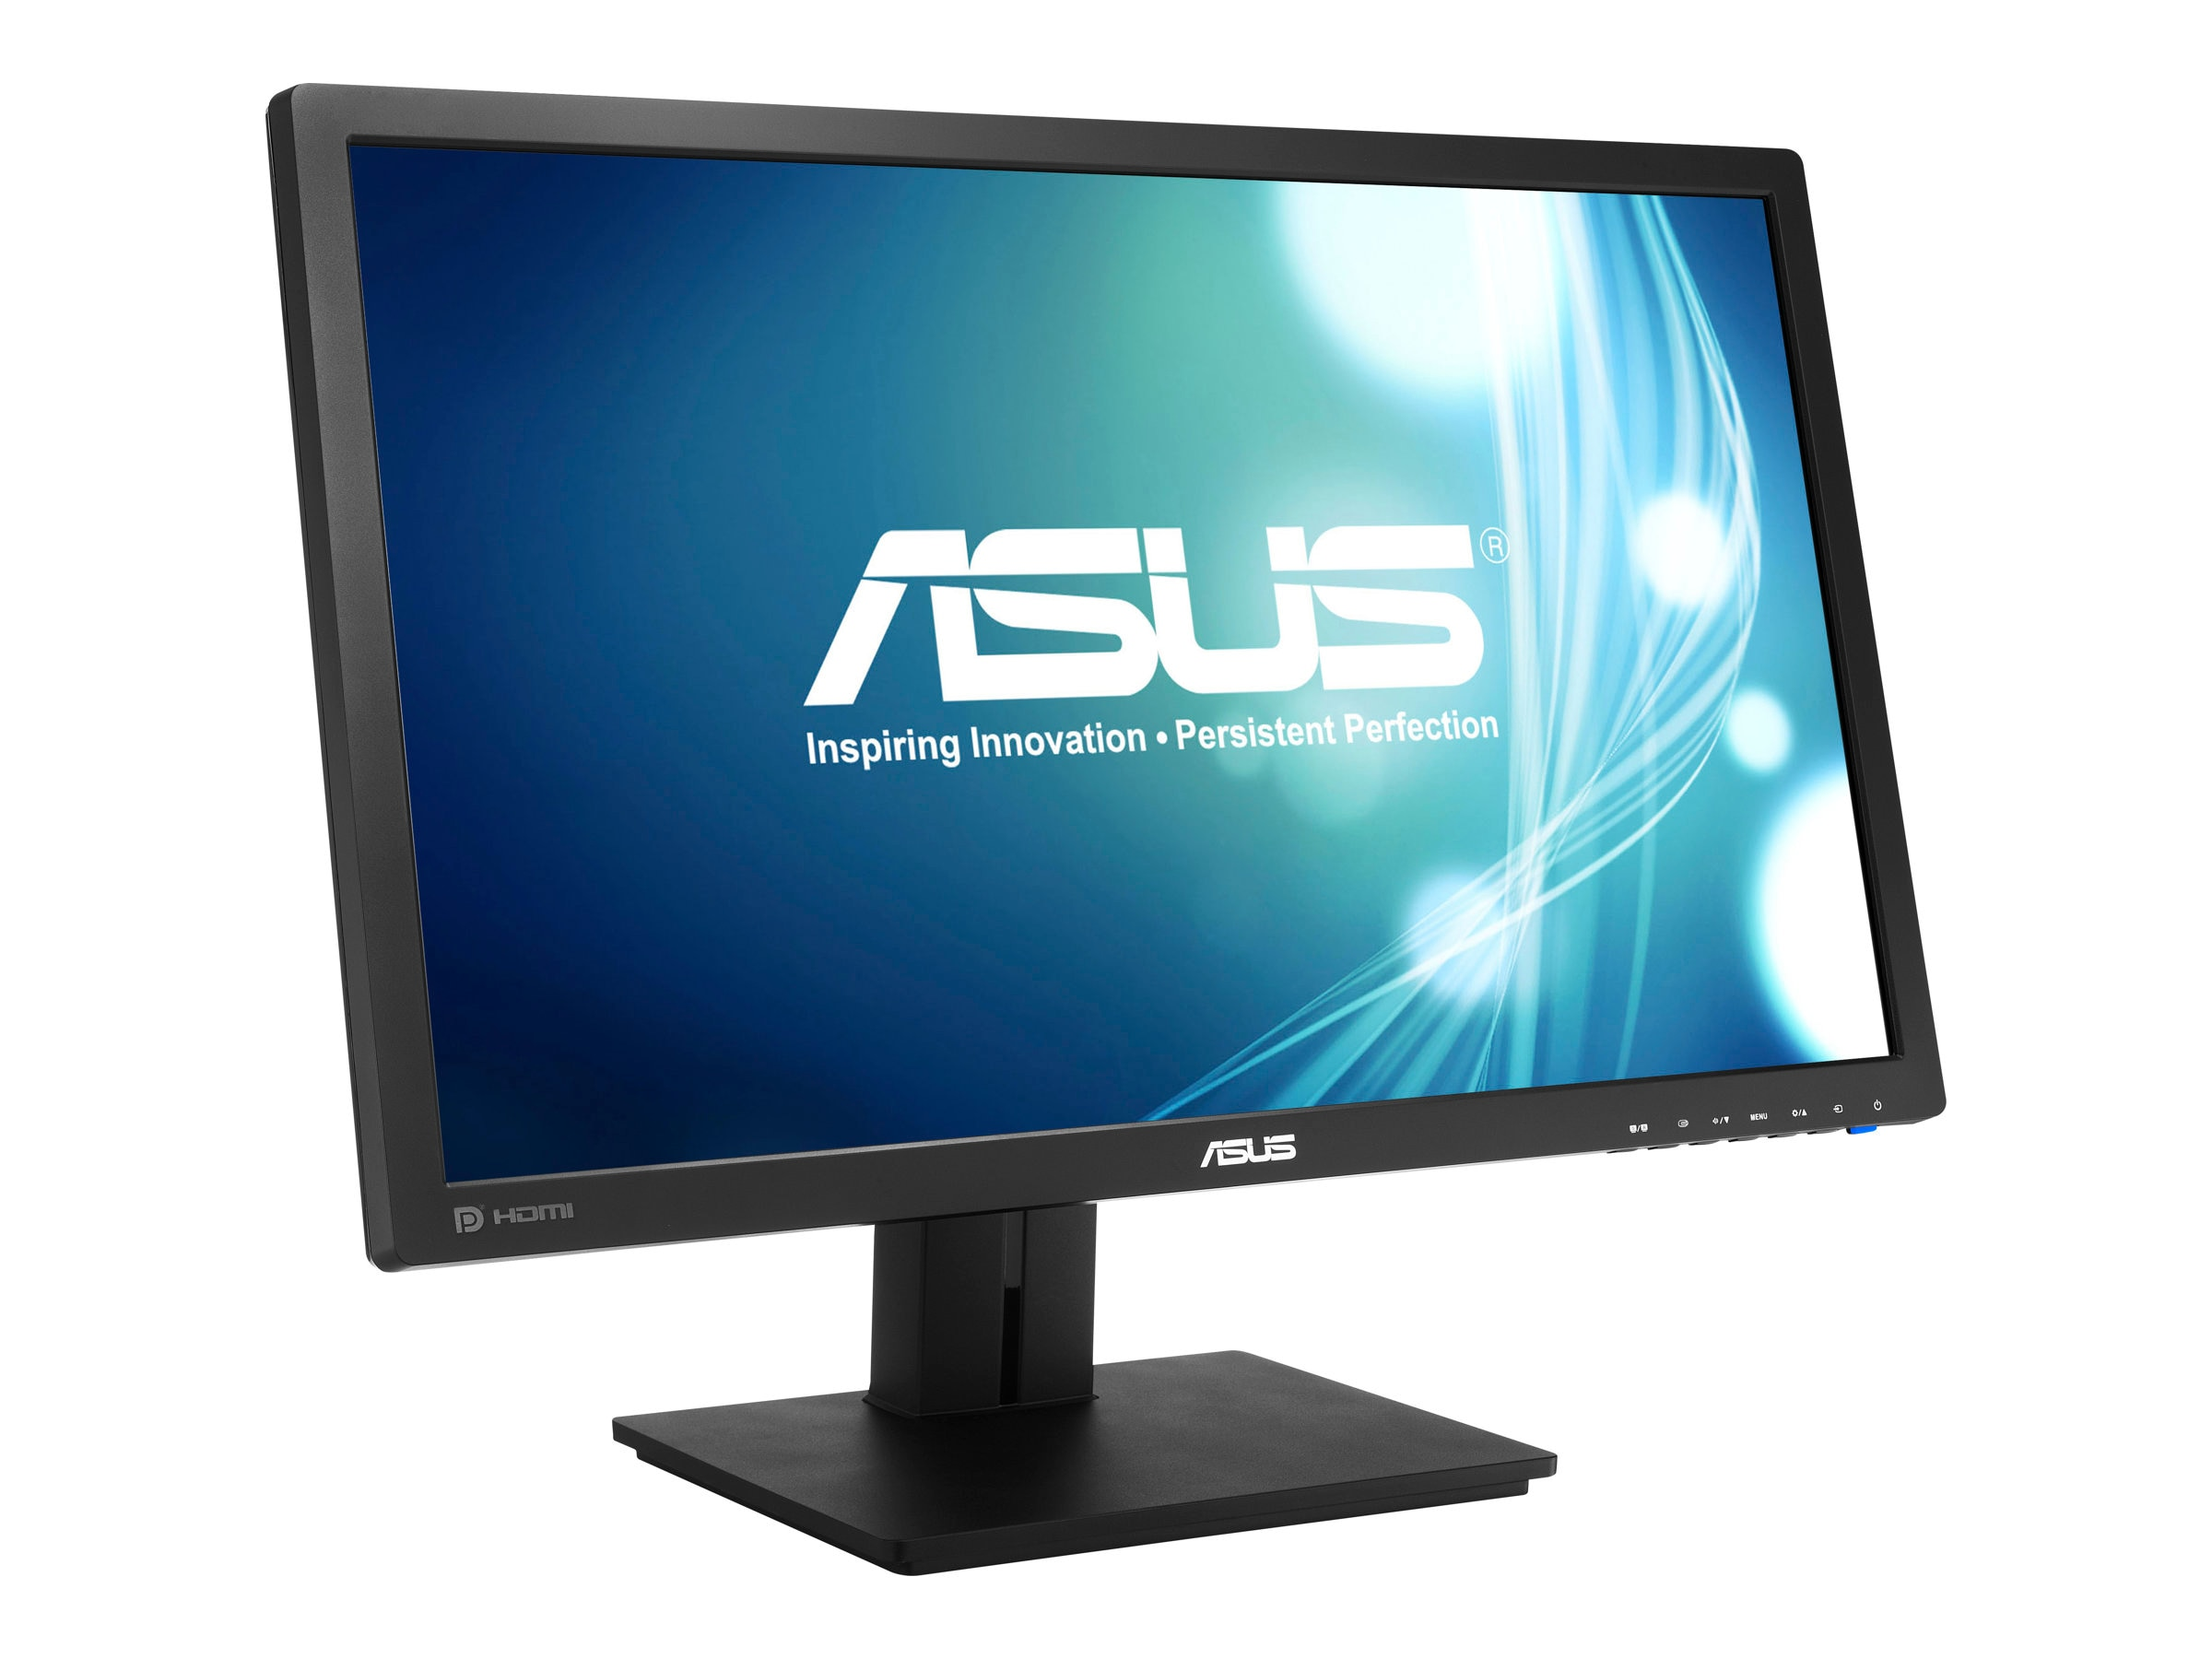 Asus 27 PB278Q LED-LCD Monitor, Black